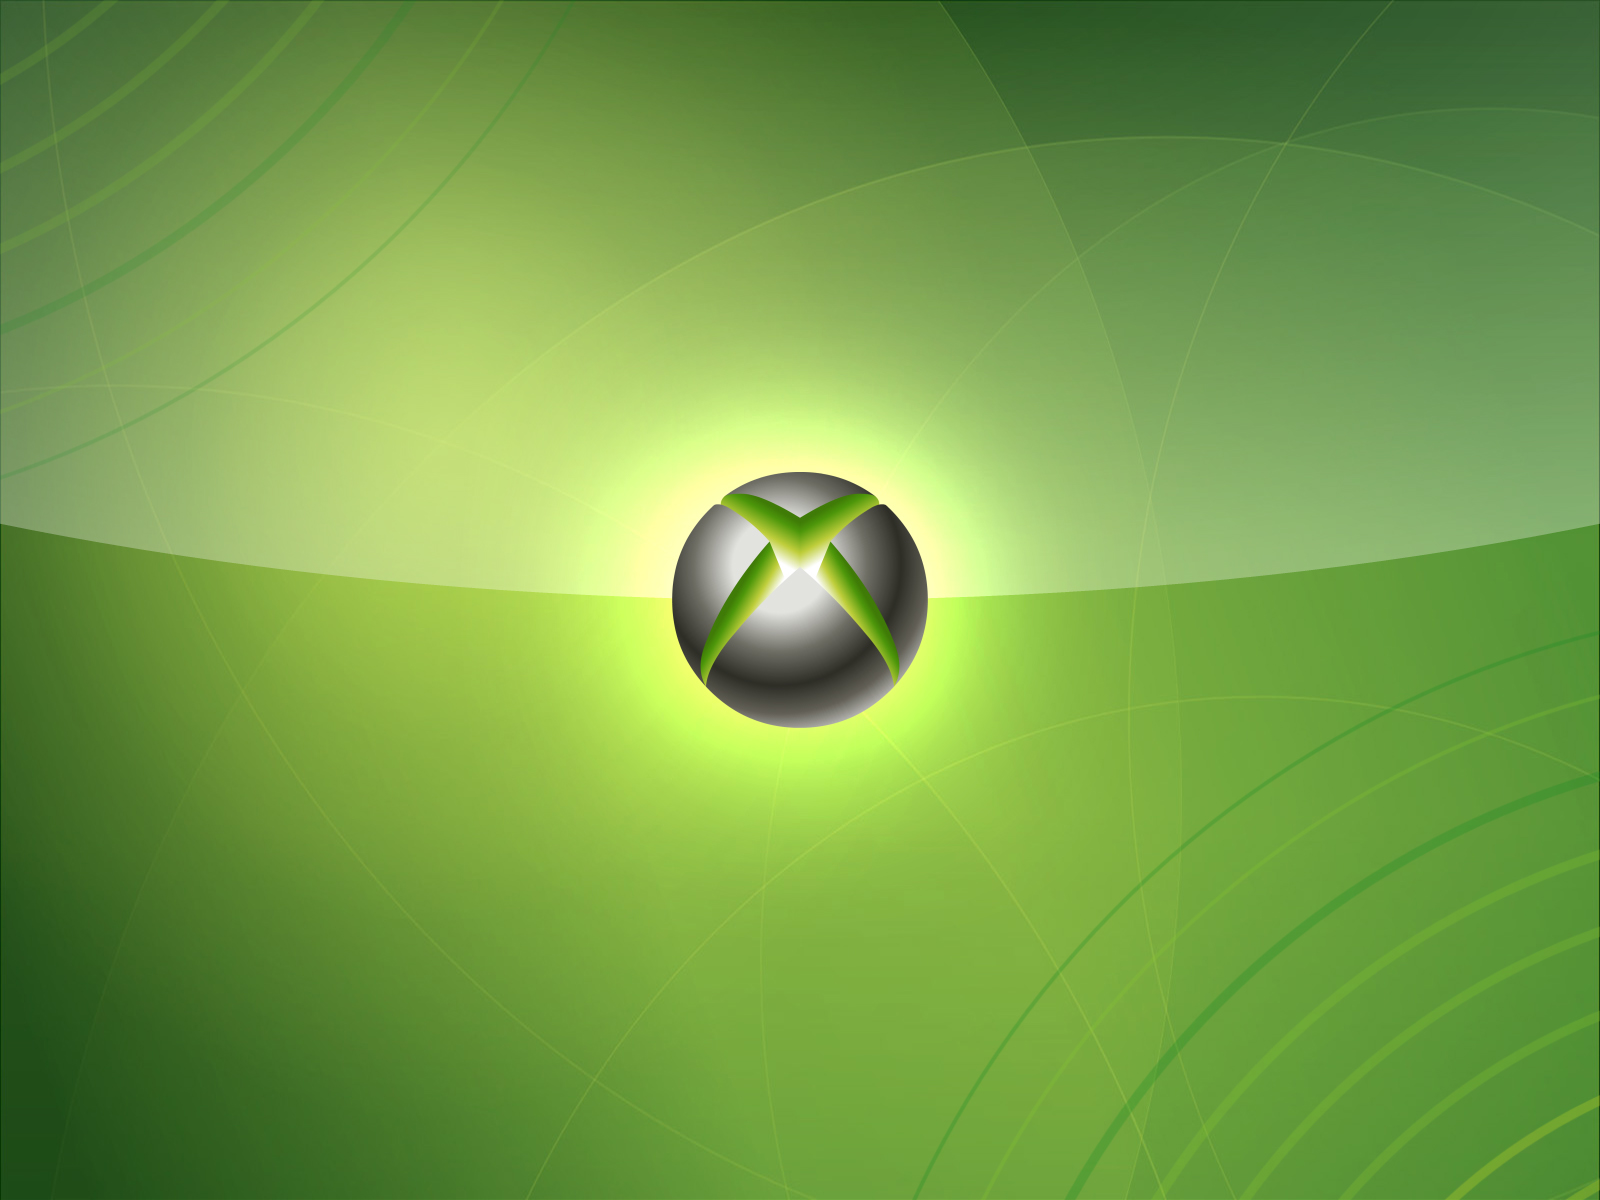 Xbox One Wallpaper X 1600x1200